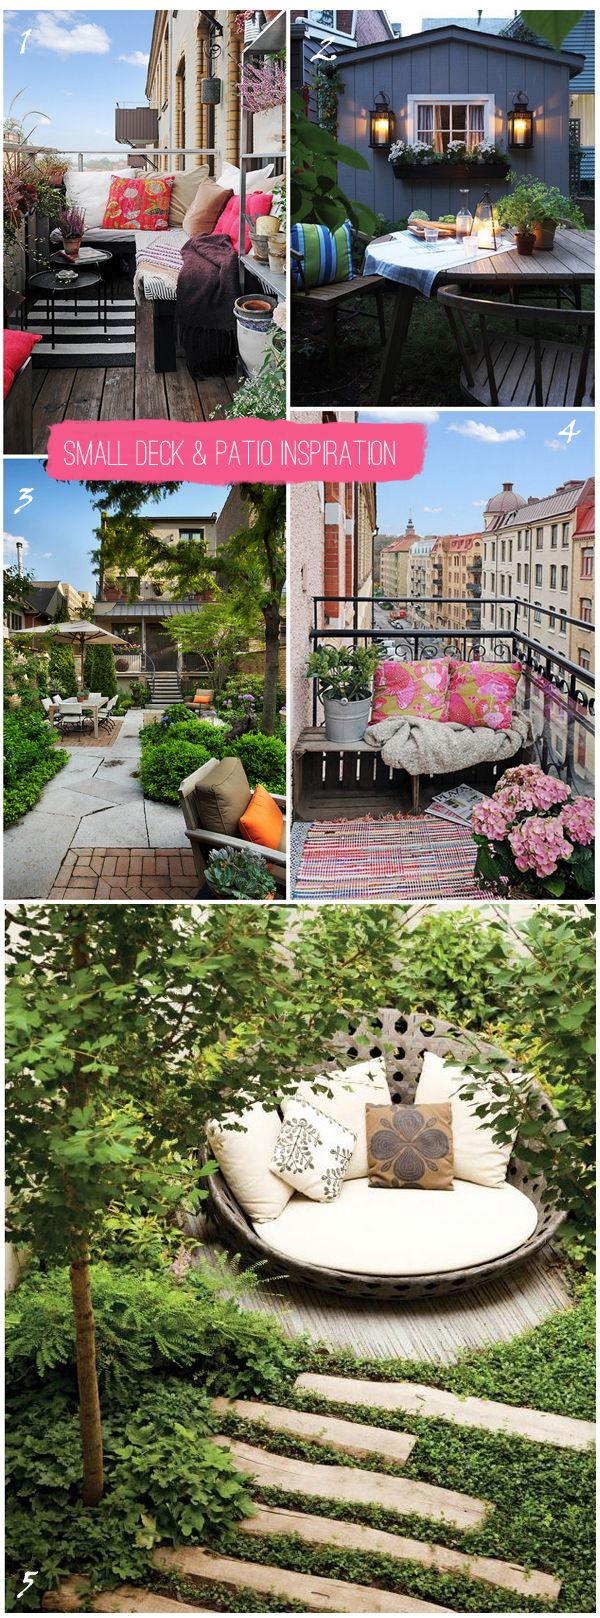 Best 20+ Small Deck Patio Ideas On Pinterest | Small Decks, Small Fire Pit  And Small Deck Space